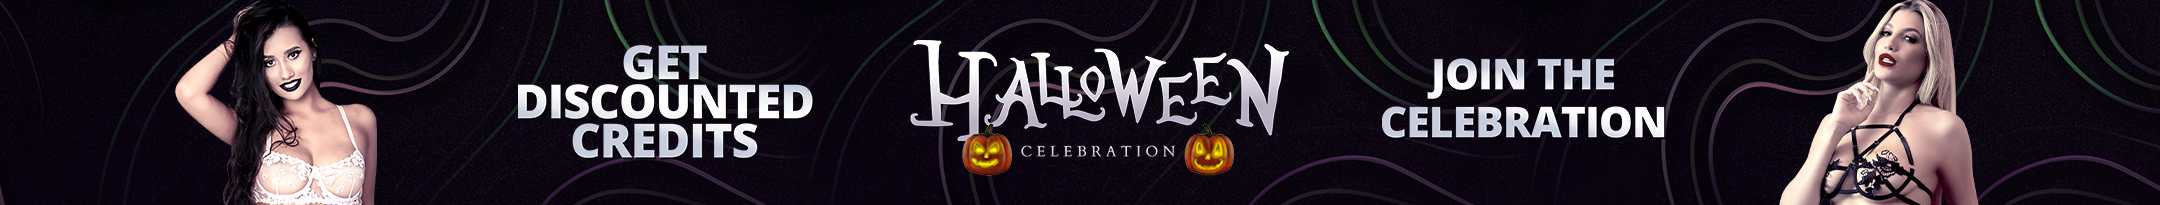 Halloween Celebration (Day 1) Promo